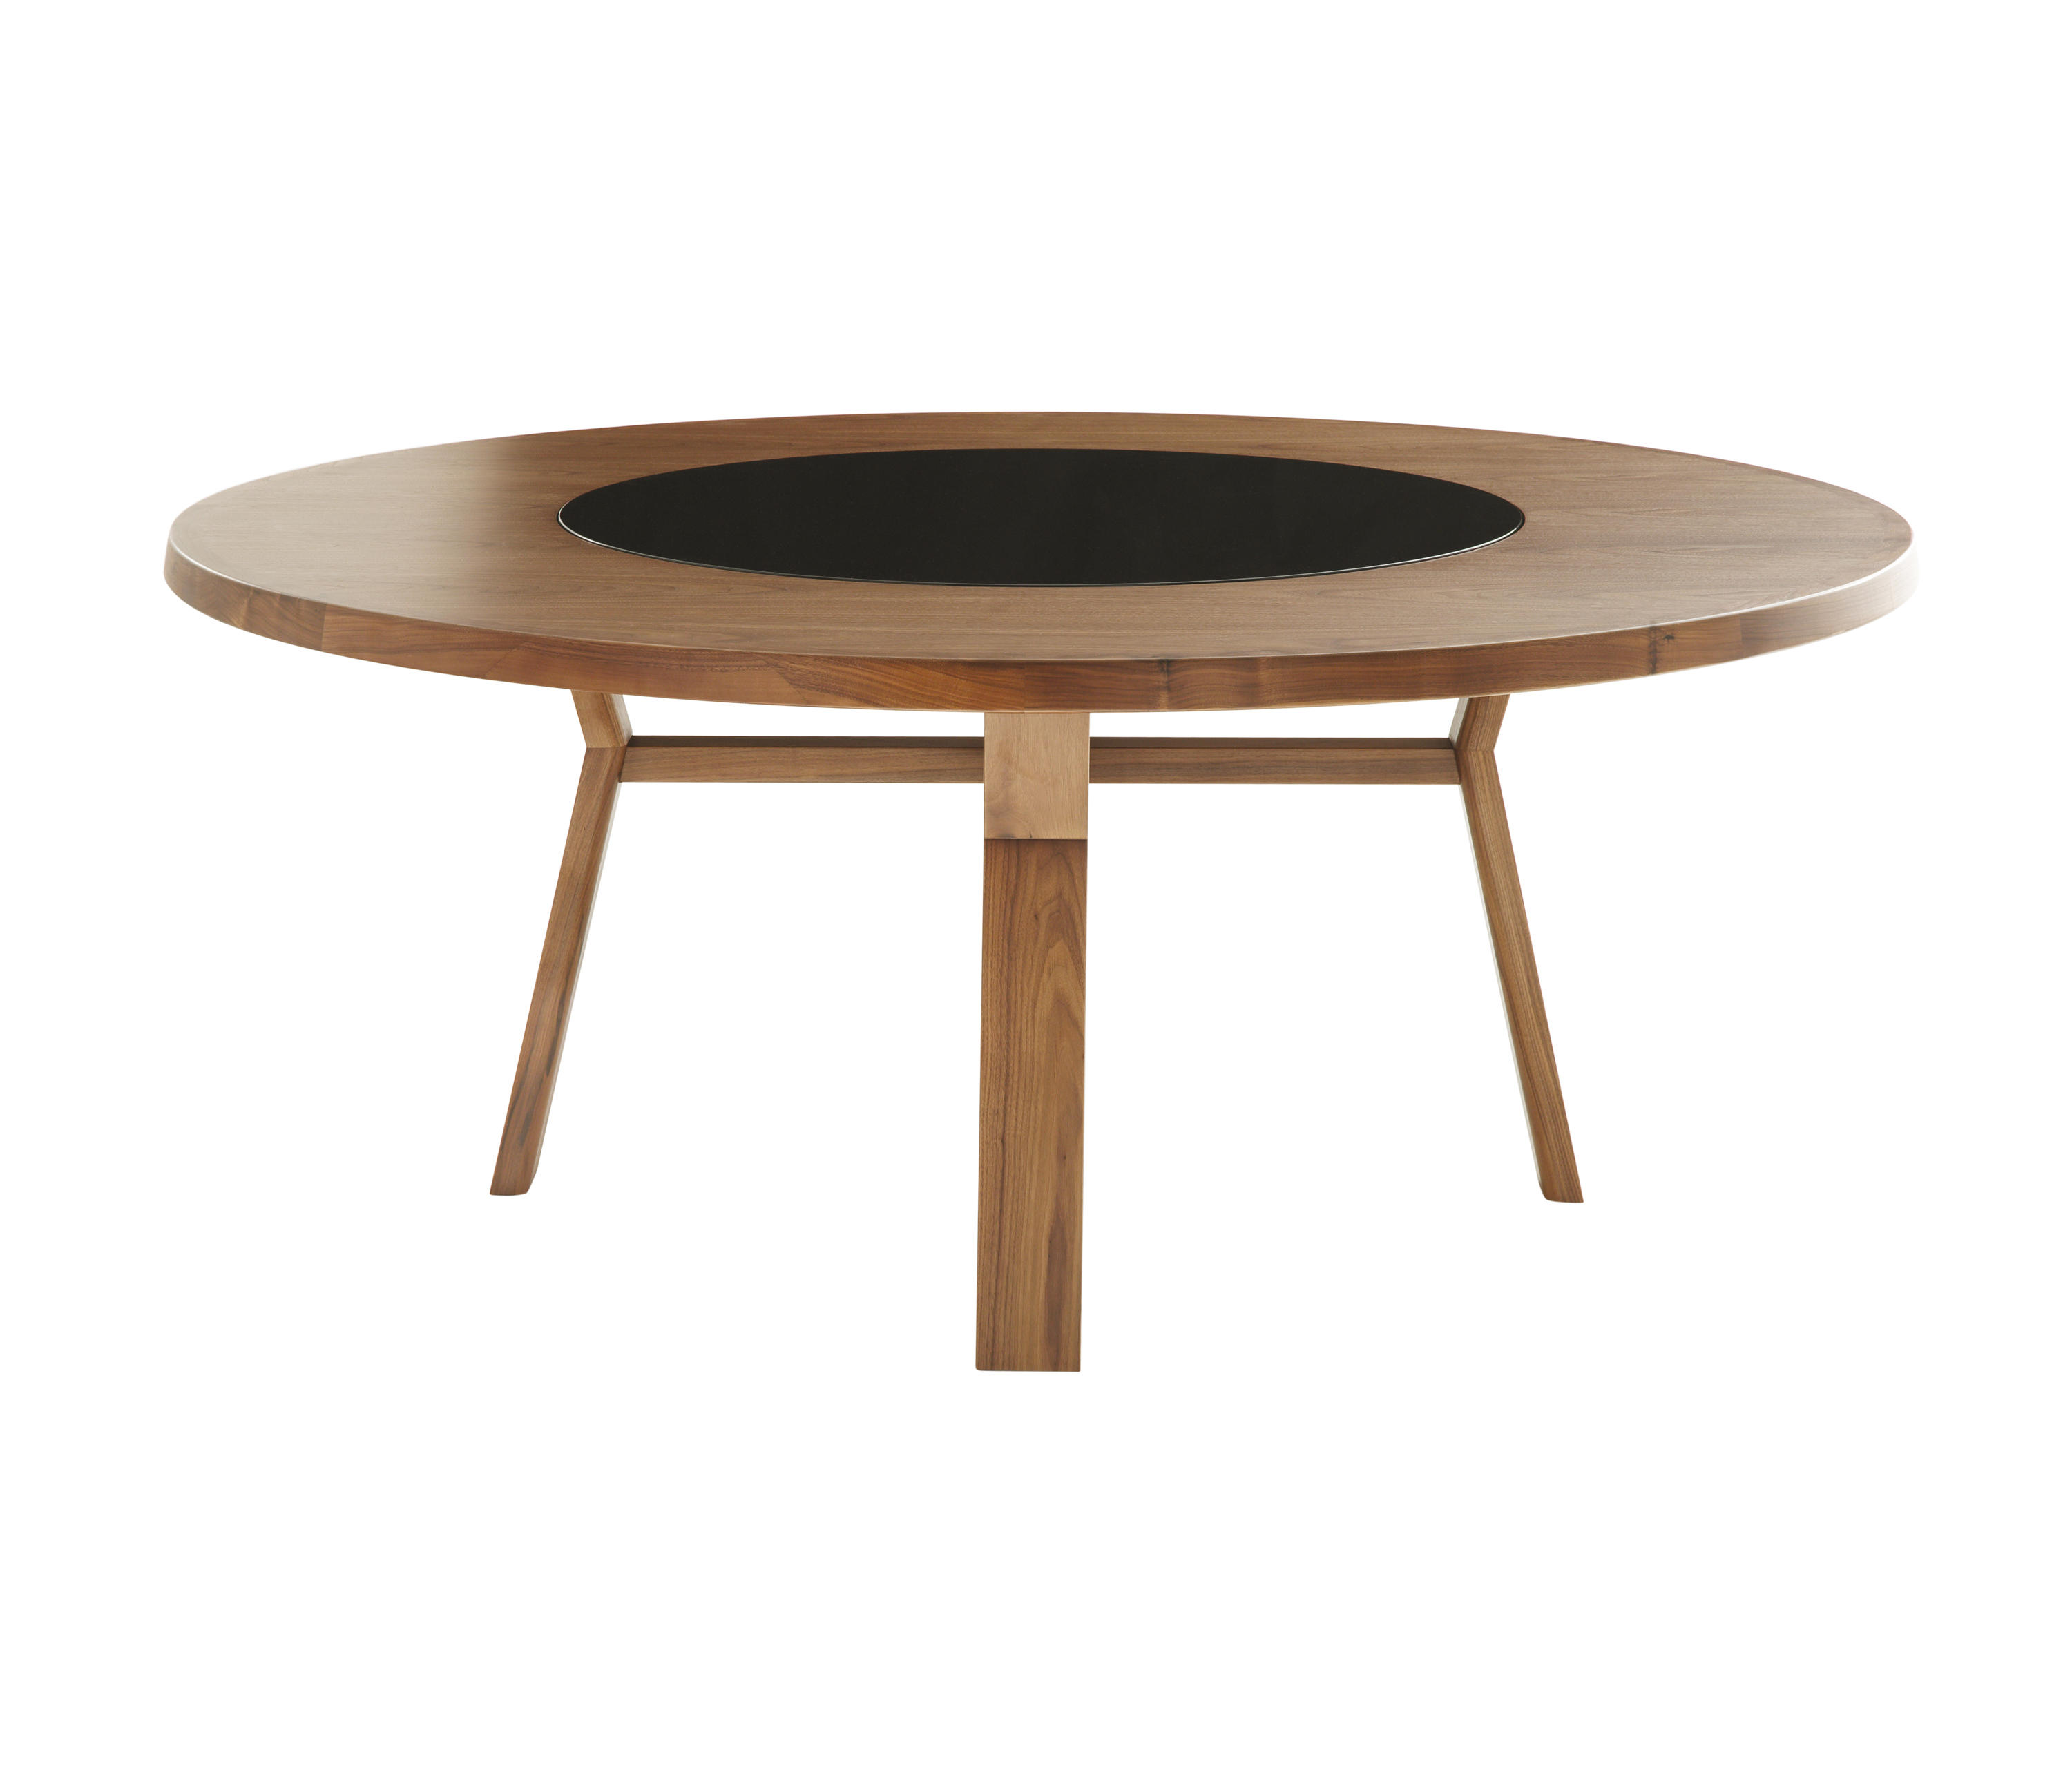 Sui dining table 2 restaurant tables from hc28 for 144 dining table